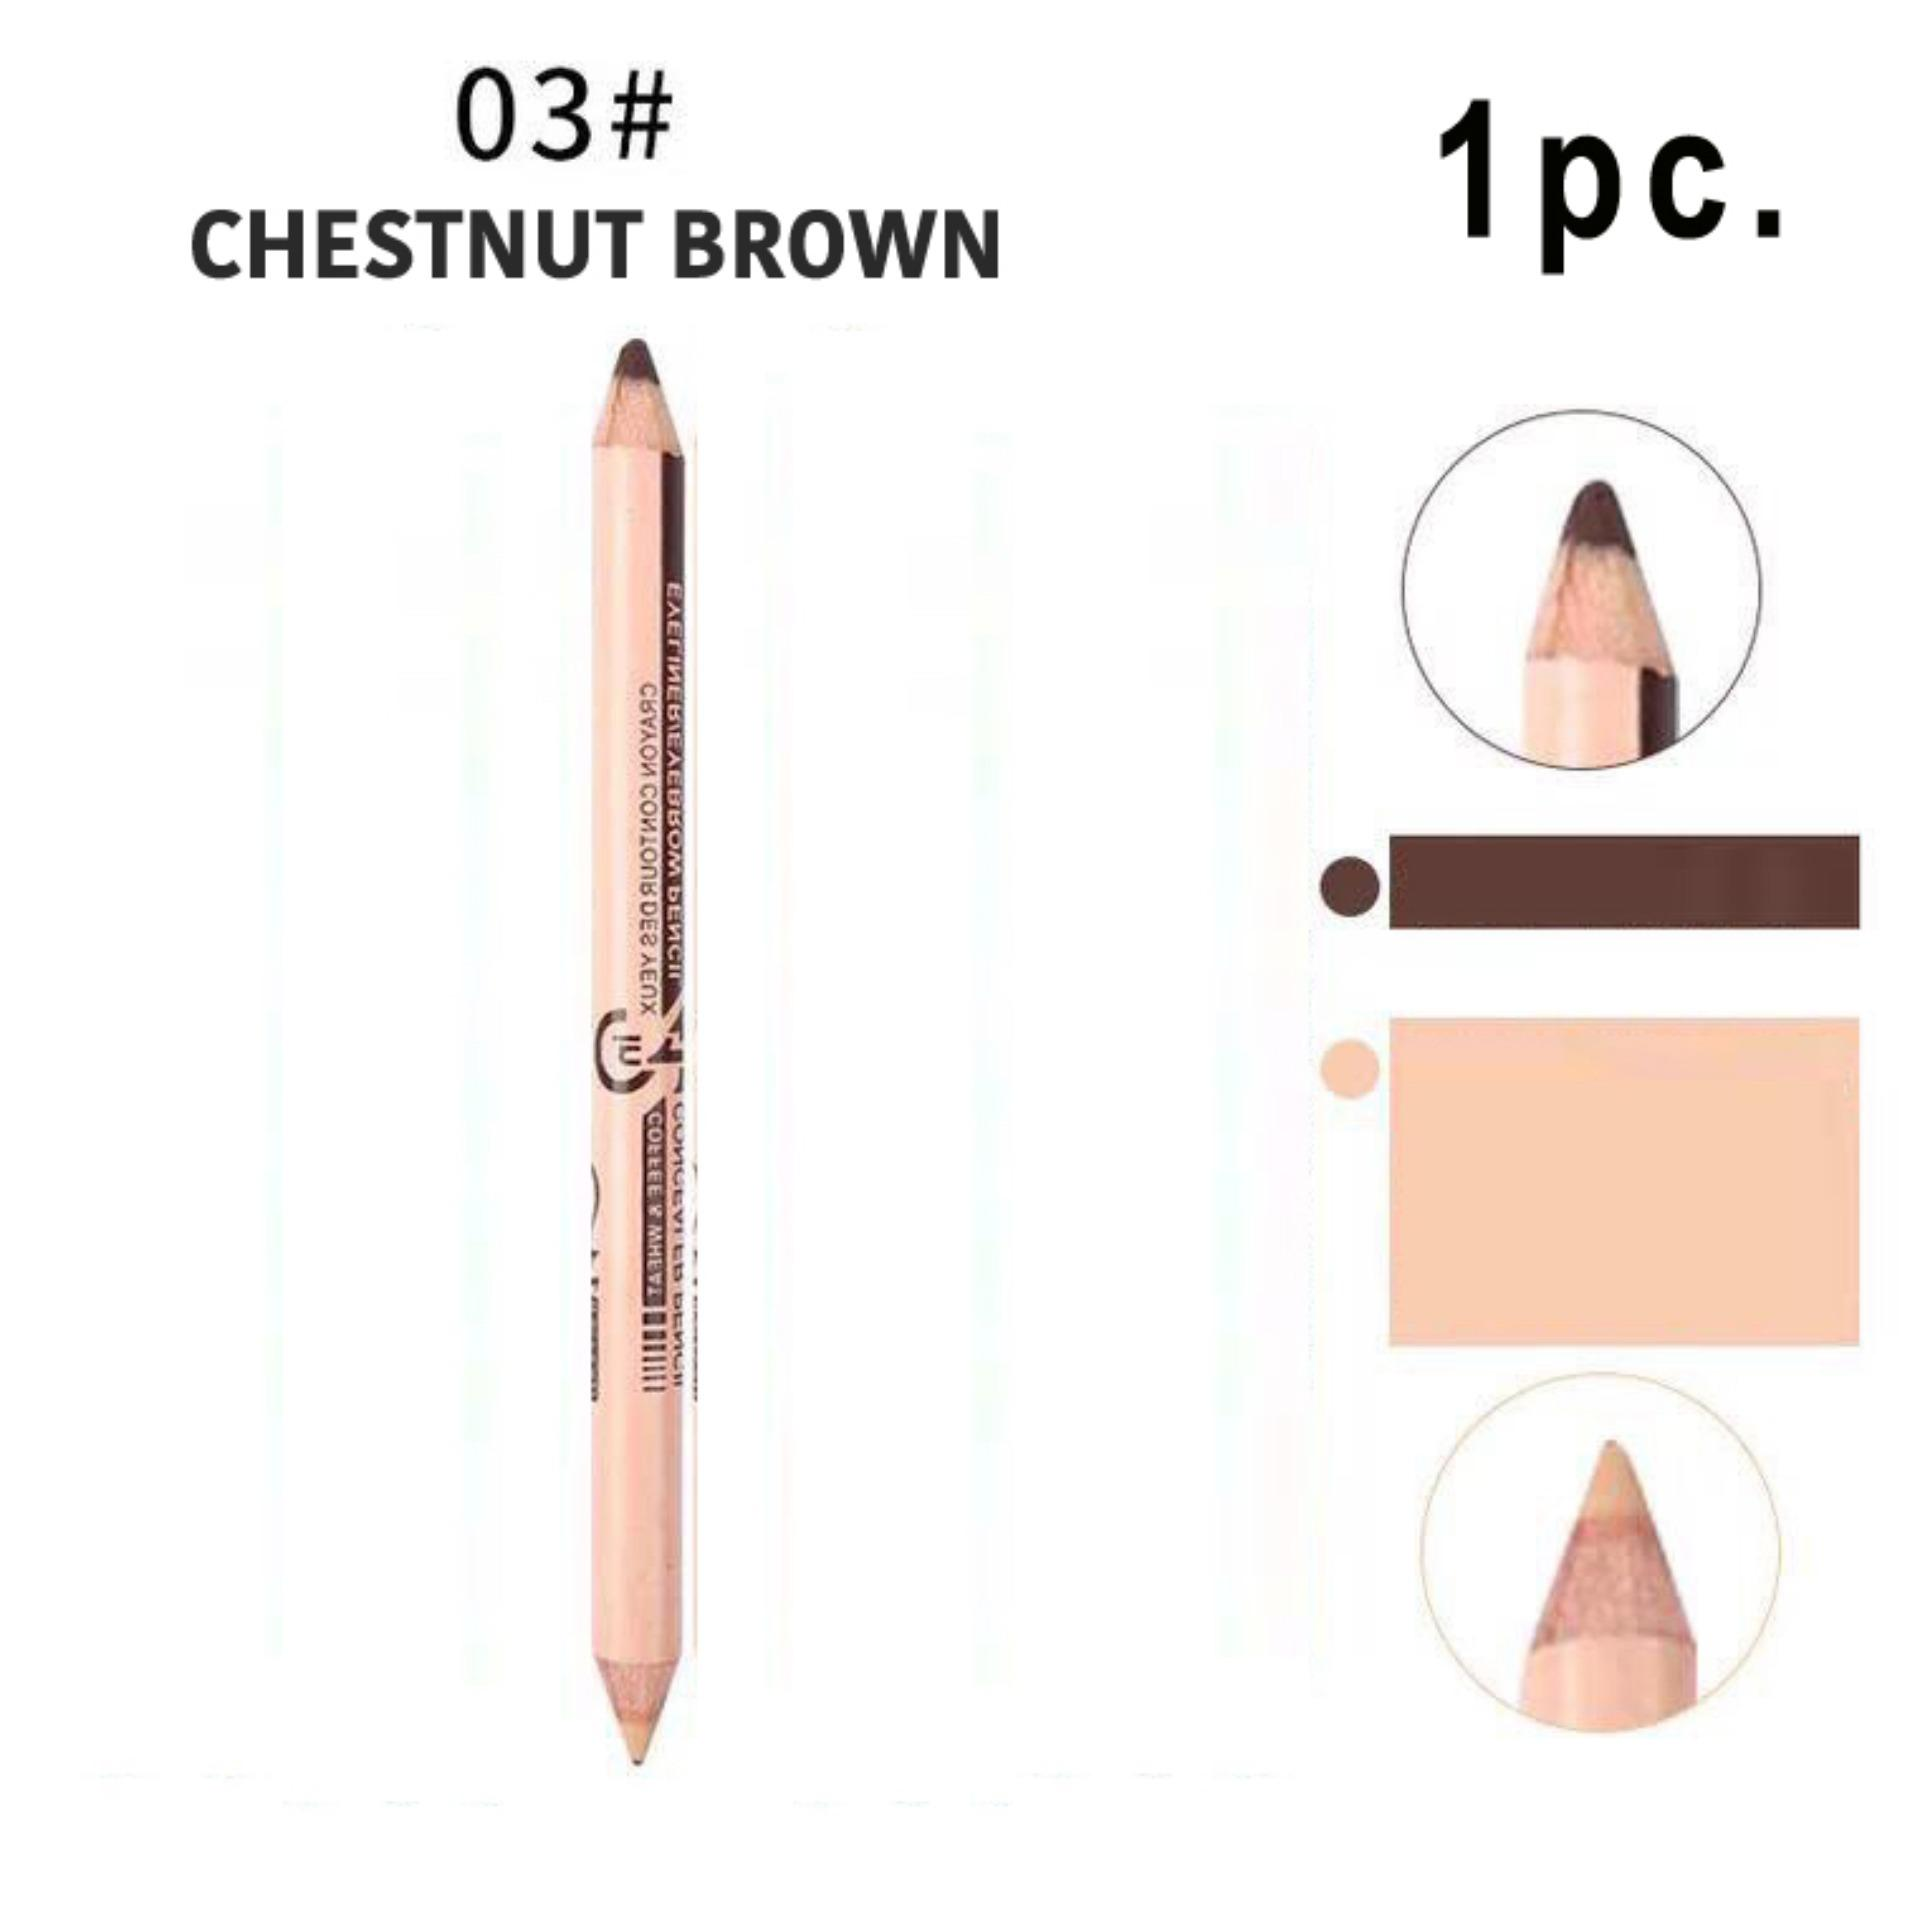 2in1 Eyeliner/eyebrow And Concealer Pencil - Chestnut Brown (1 Pieces) By Lowest Price Guaranteed.